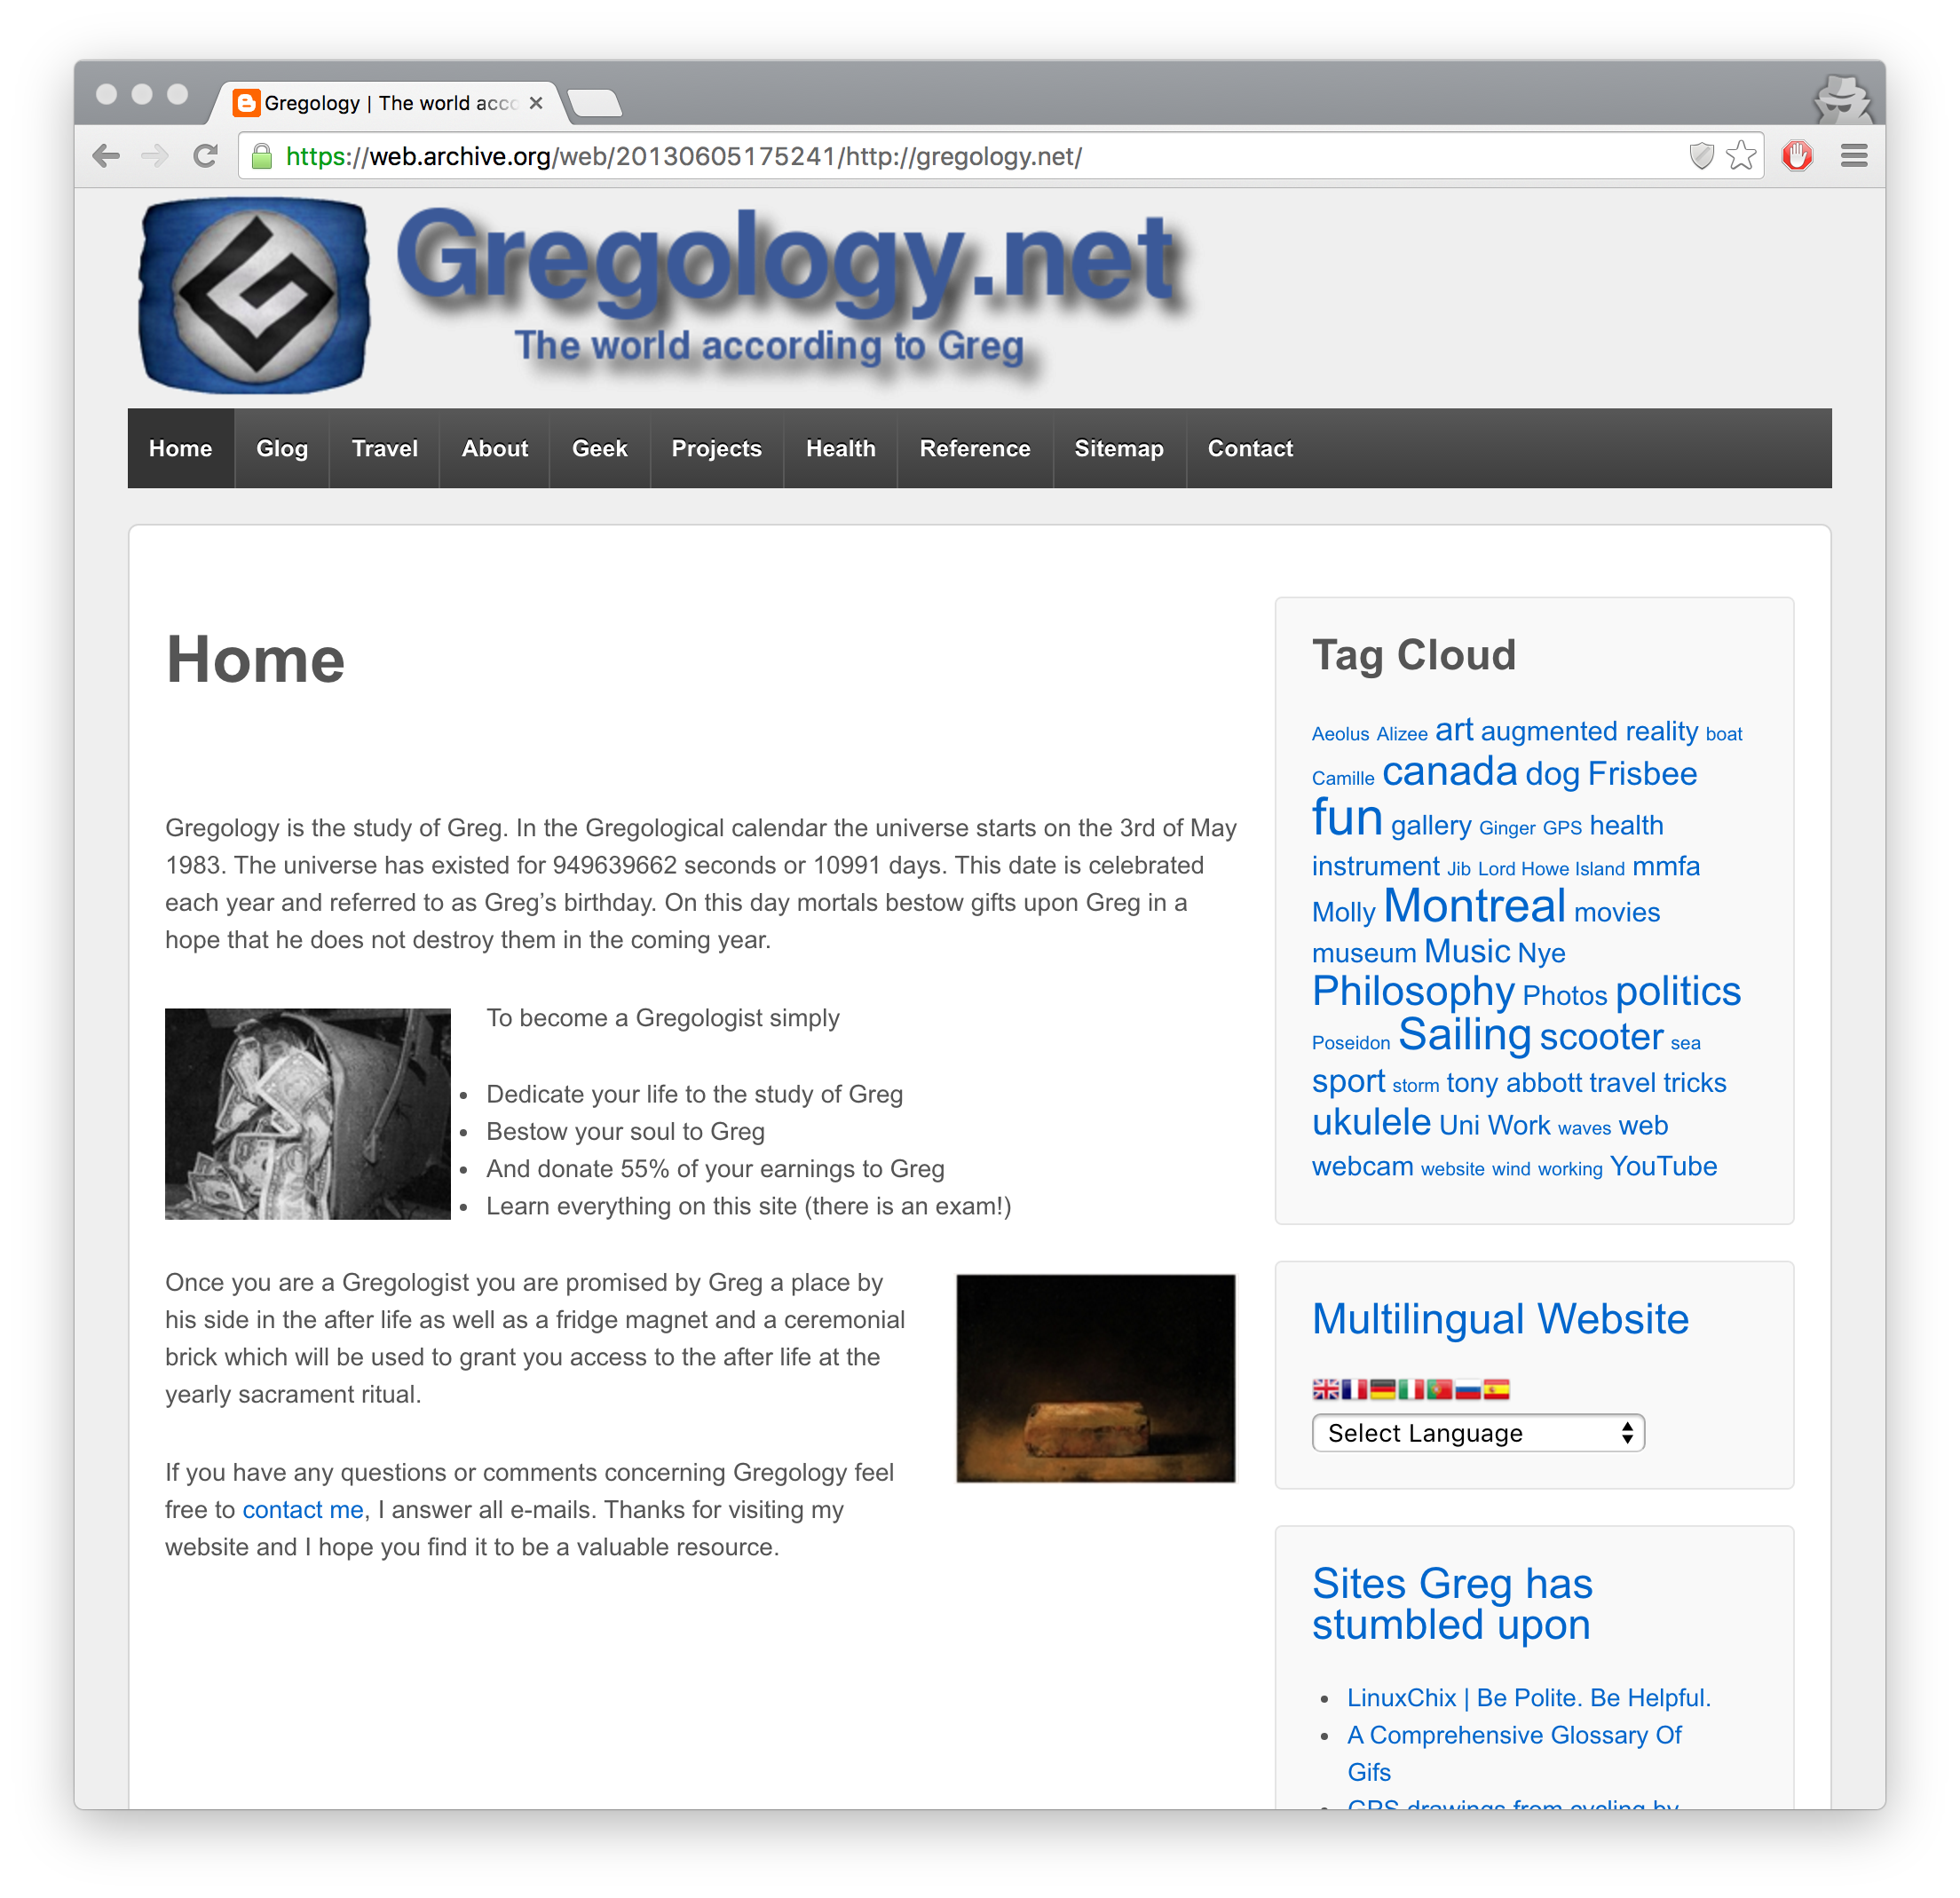 Gregology.net 2012 version